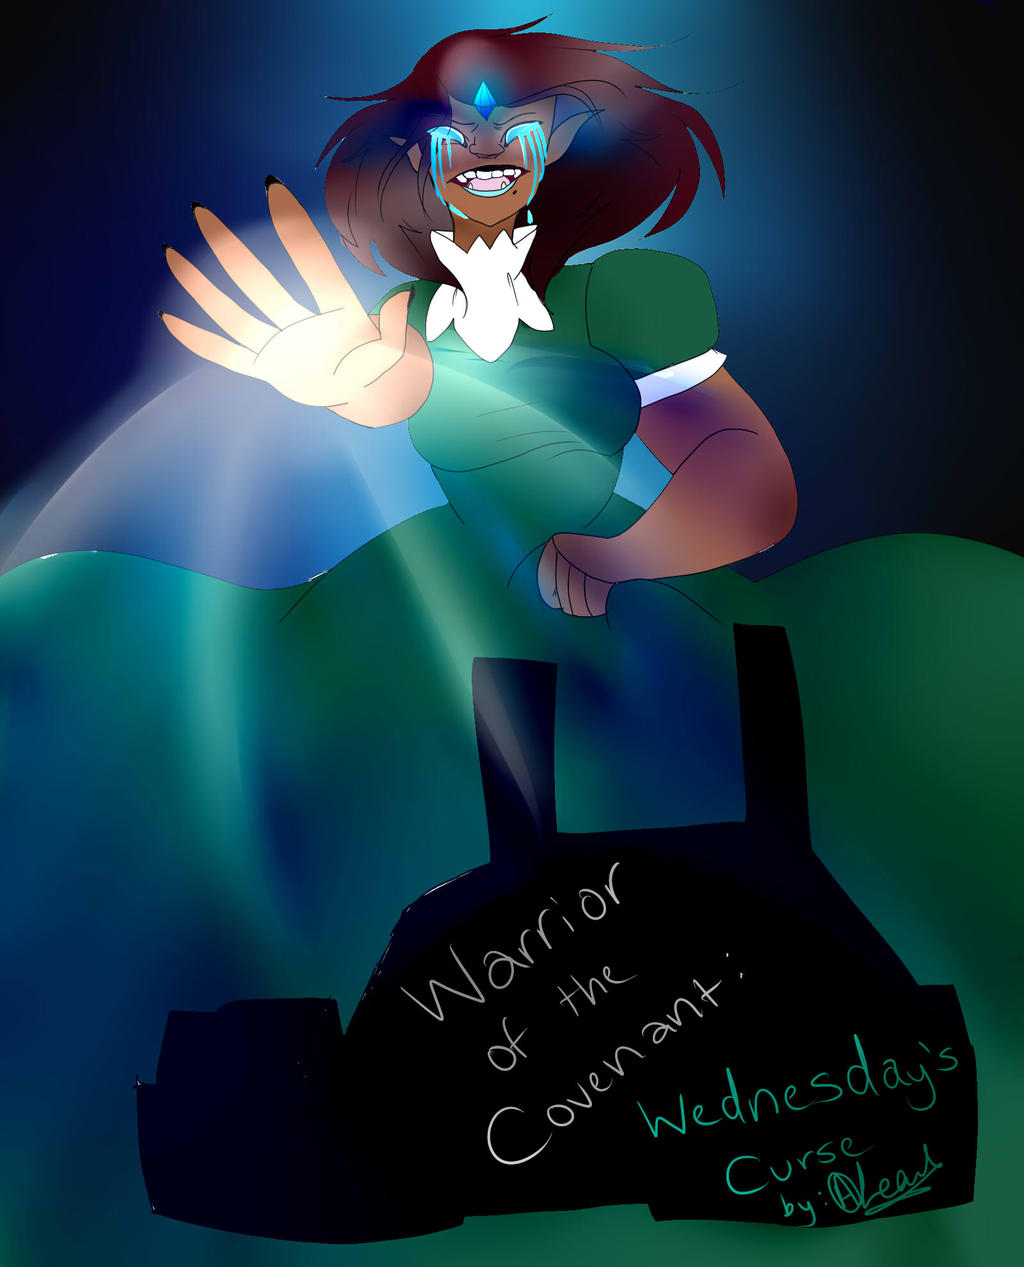 WOC Chapter 1 Cover: Wednesday's curse by Illiterate-Swine